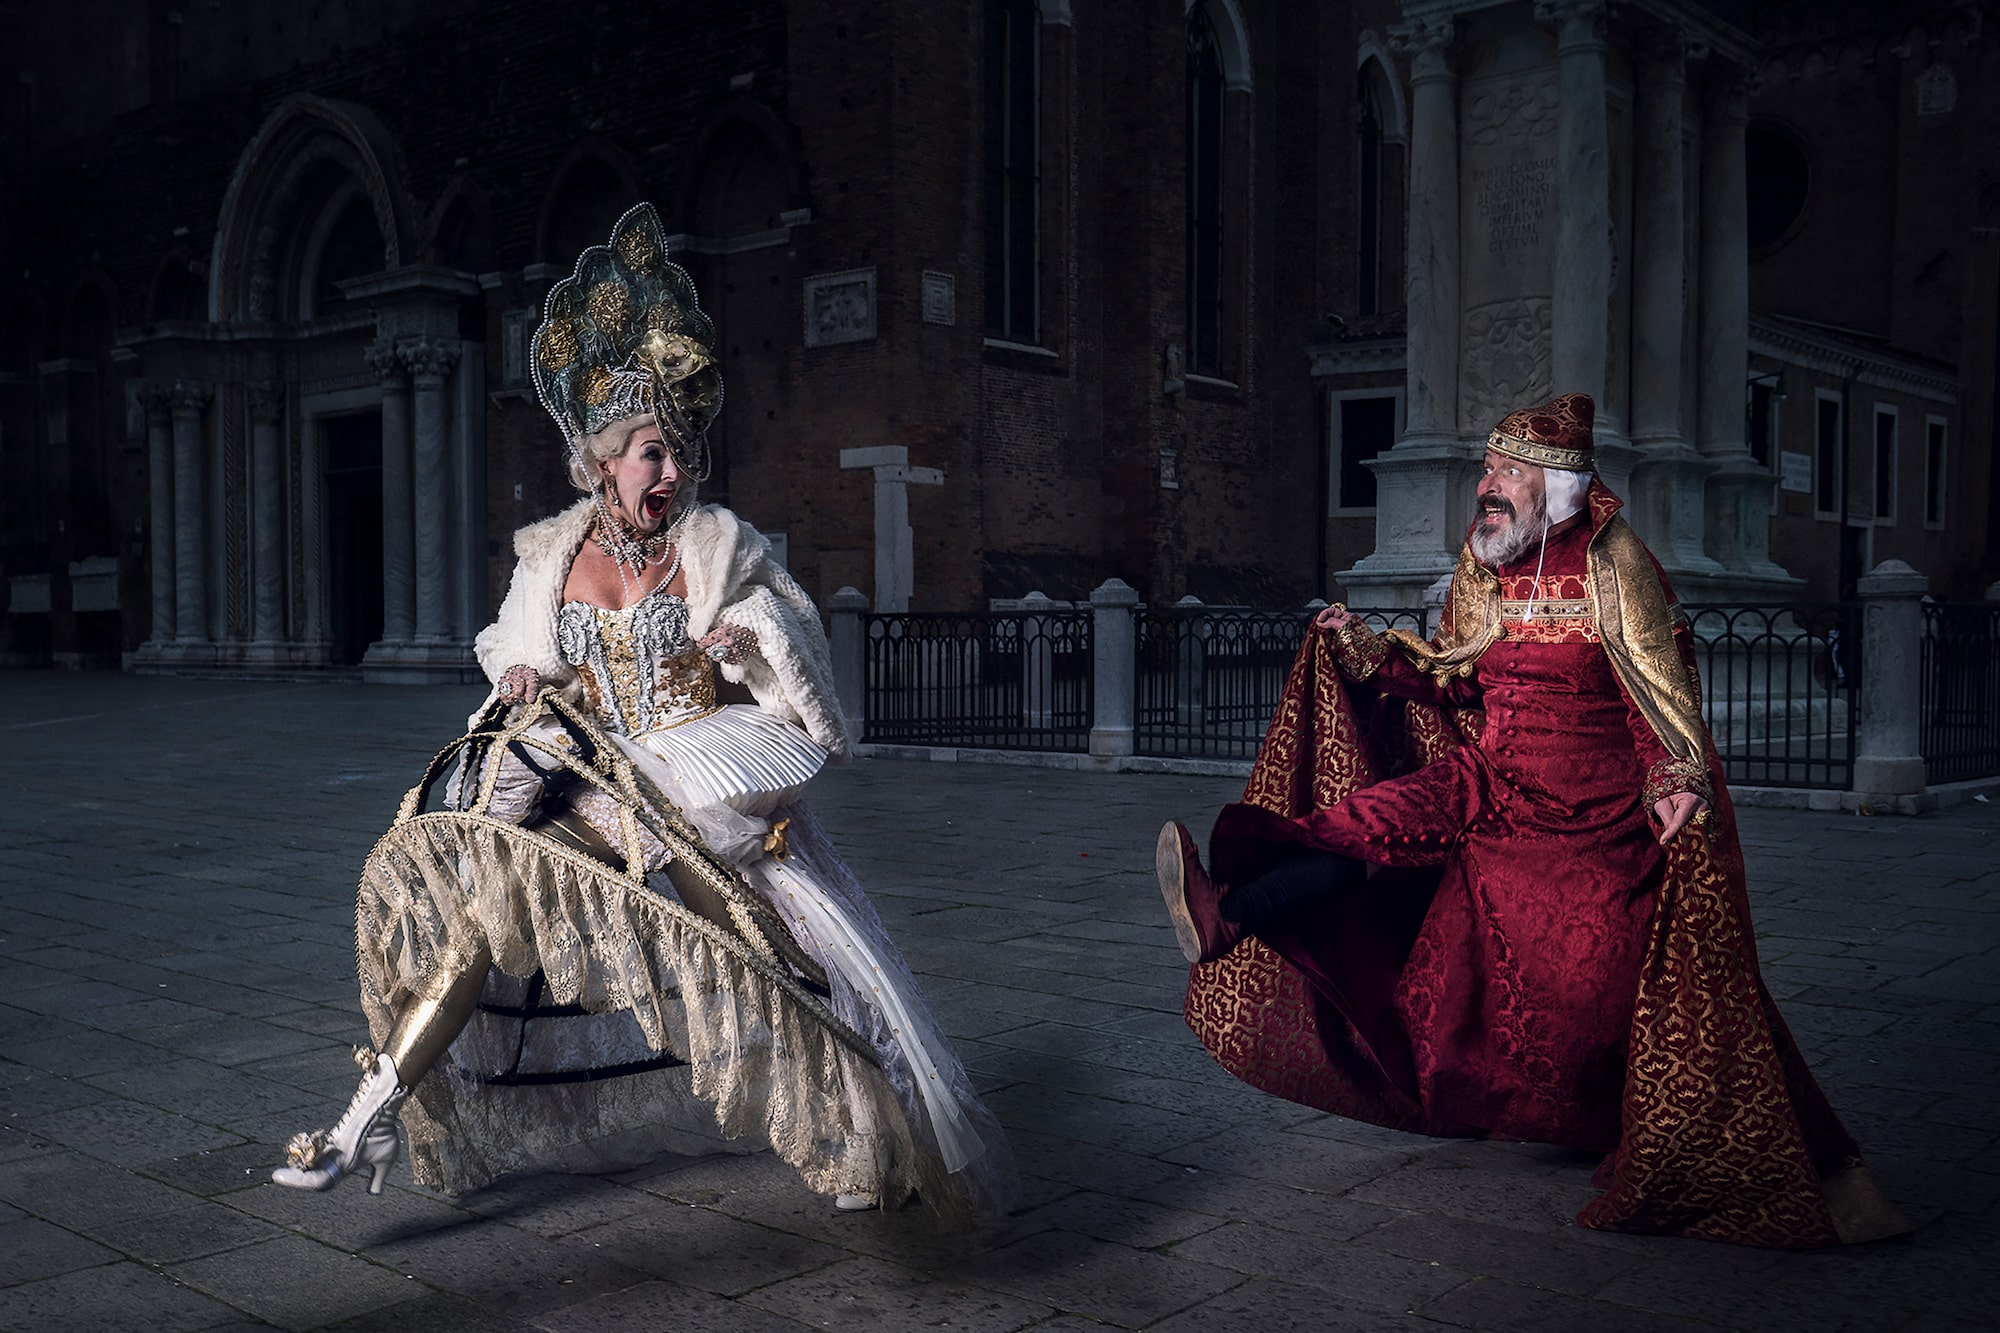 mathias kniepeiss sony alpha 7RIII man and woman in venetian costume laughing as they run to chase each other